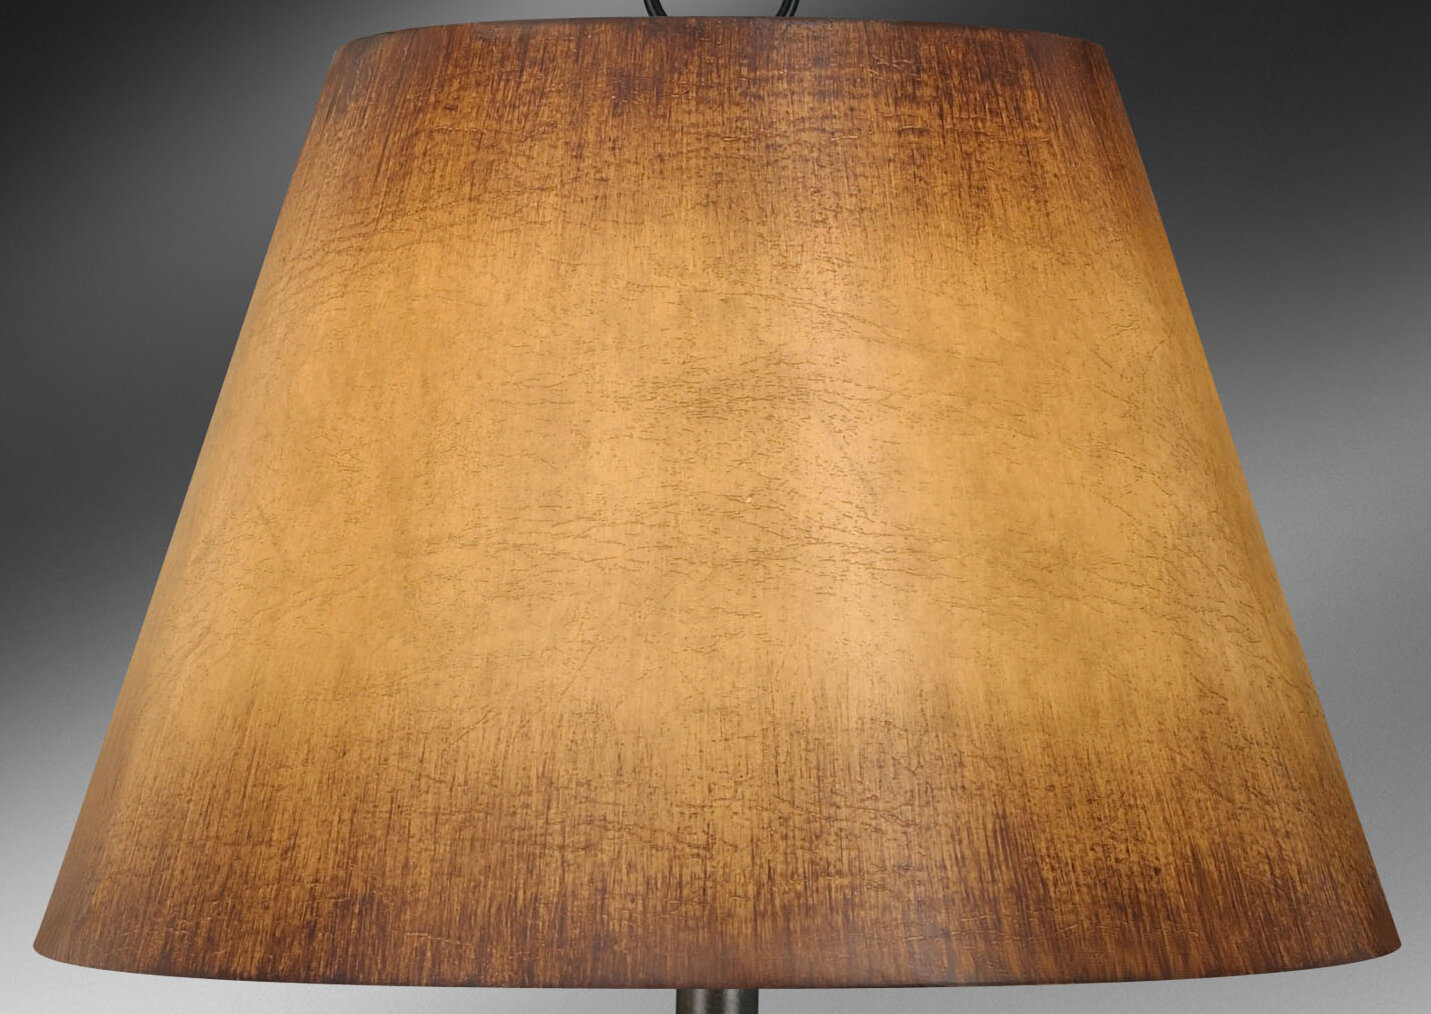 424-Antique Parchment, SI51617 Slant Transitional Bell Faux Leather Softback Lampshade with Washer Fitter